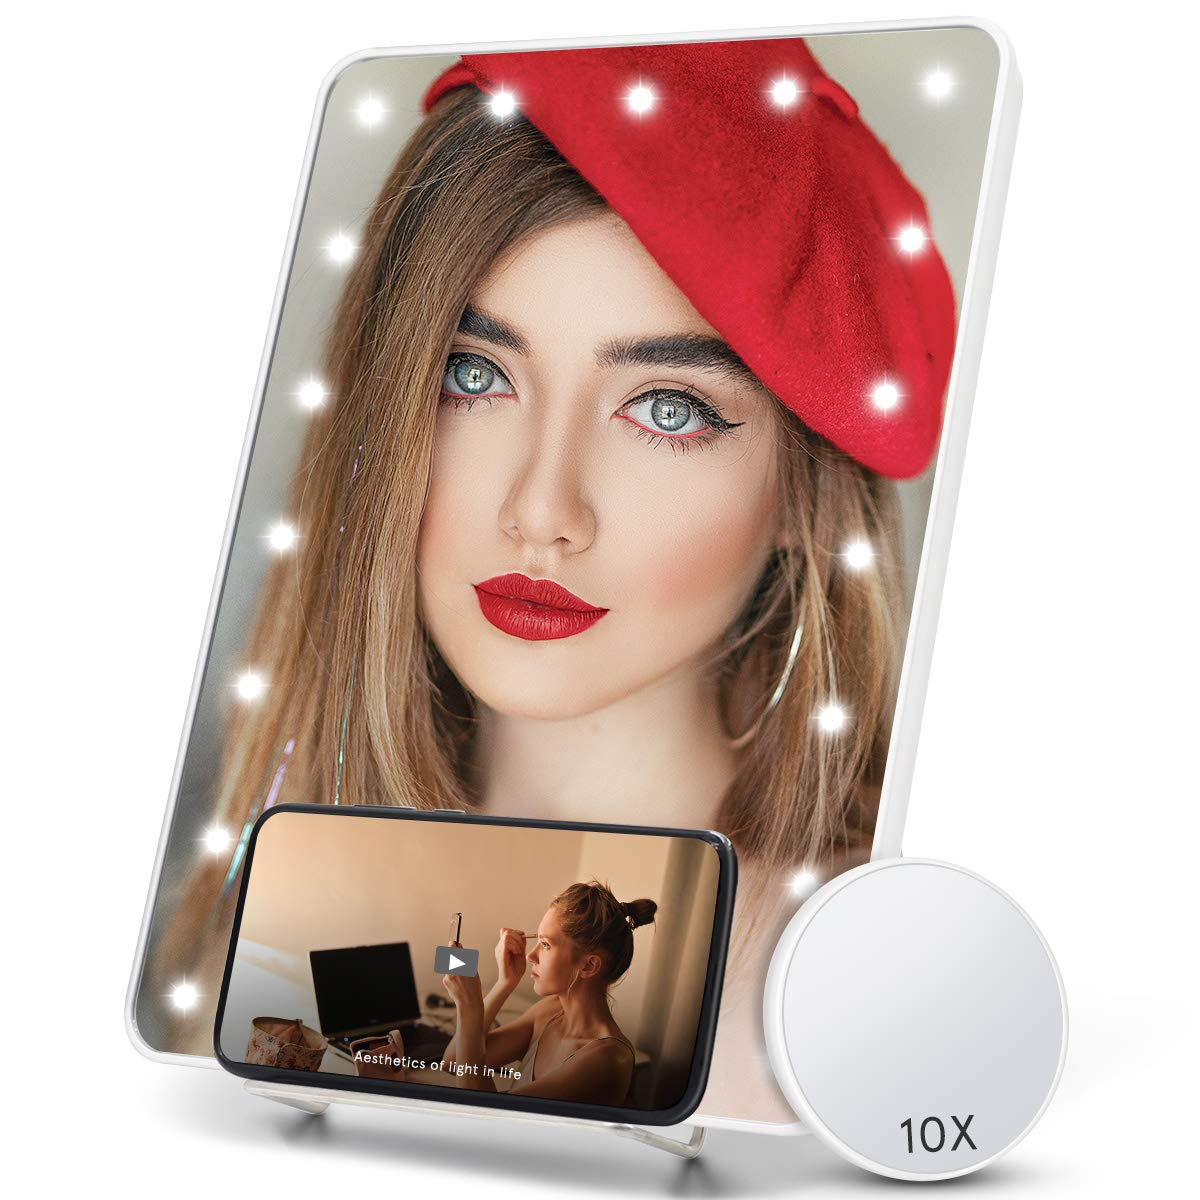 COSMIRROR Lighted Makeup Mirror with Phone Holder, Makeup Vanity Mirror with 20 LED Light and 10X Magnifying Mirror, Touch Sensor, Dual Power Supply, Hanging Wall Mount Light Up Mirror (White)